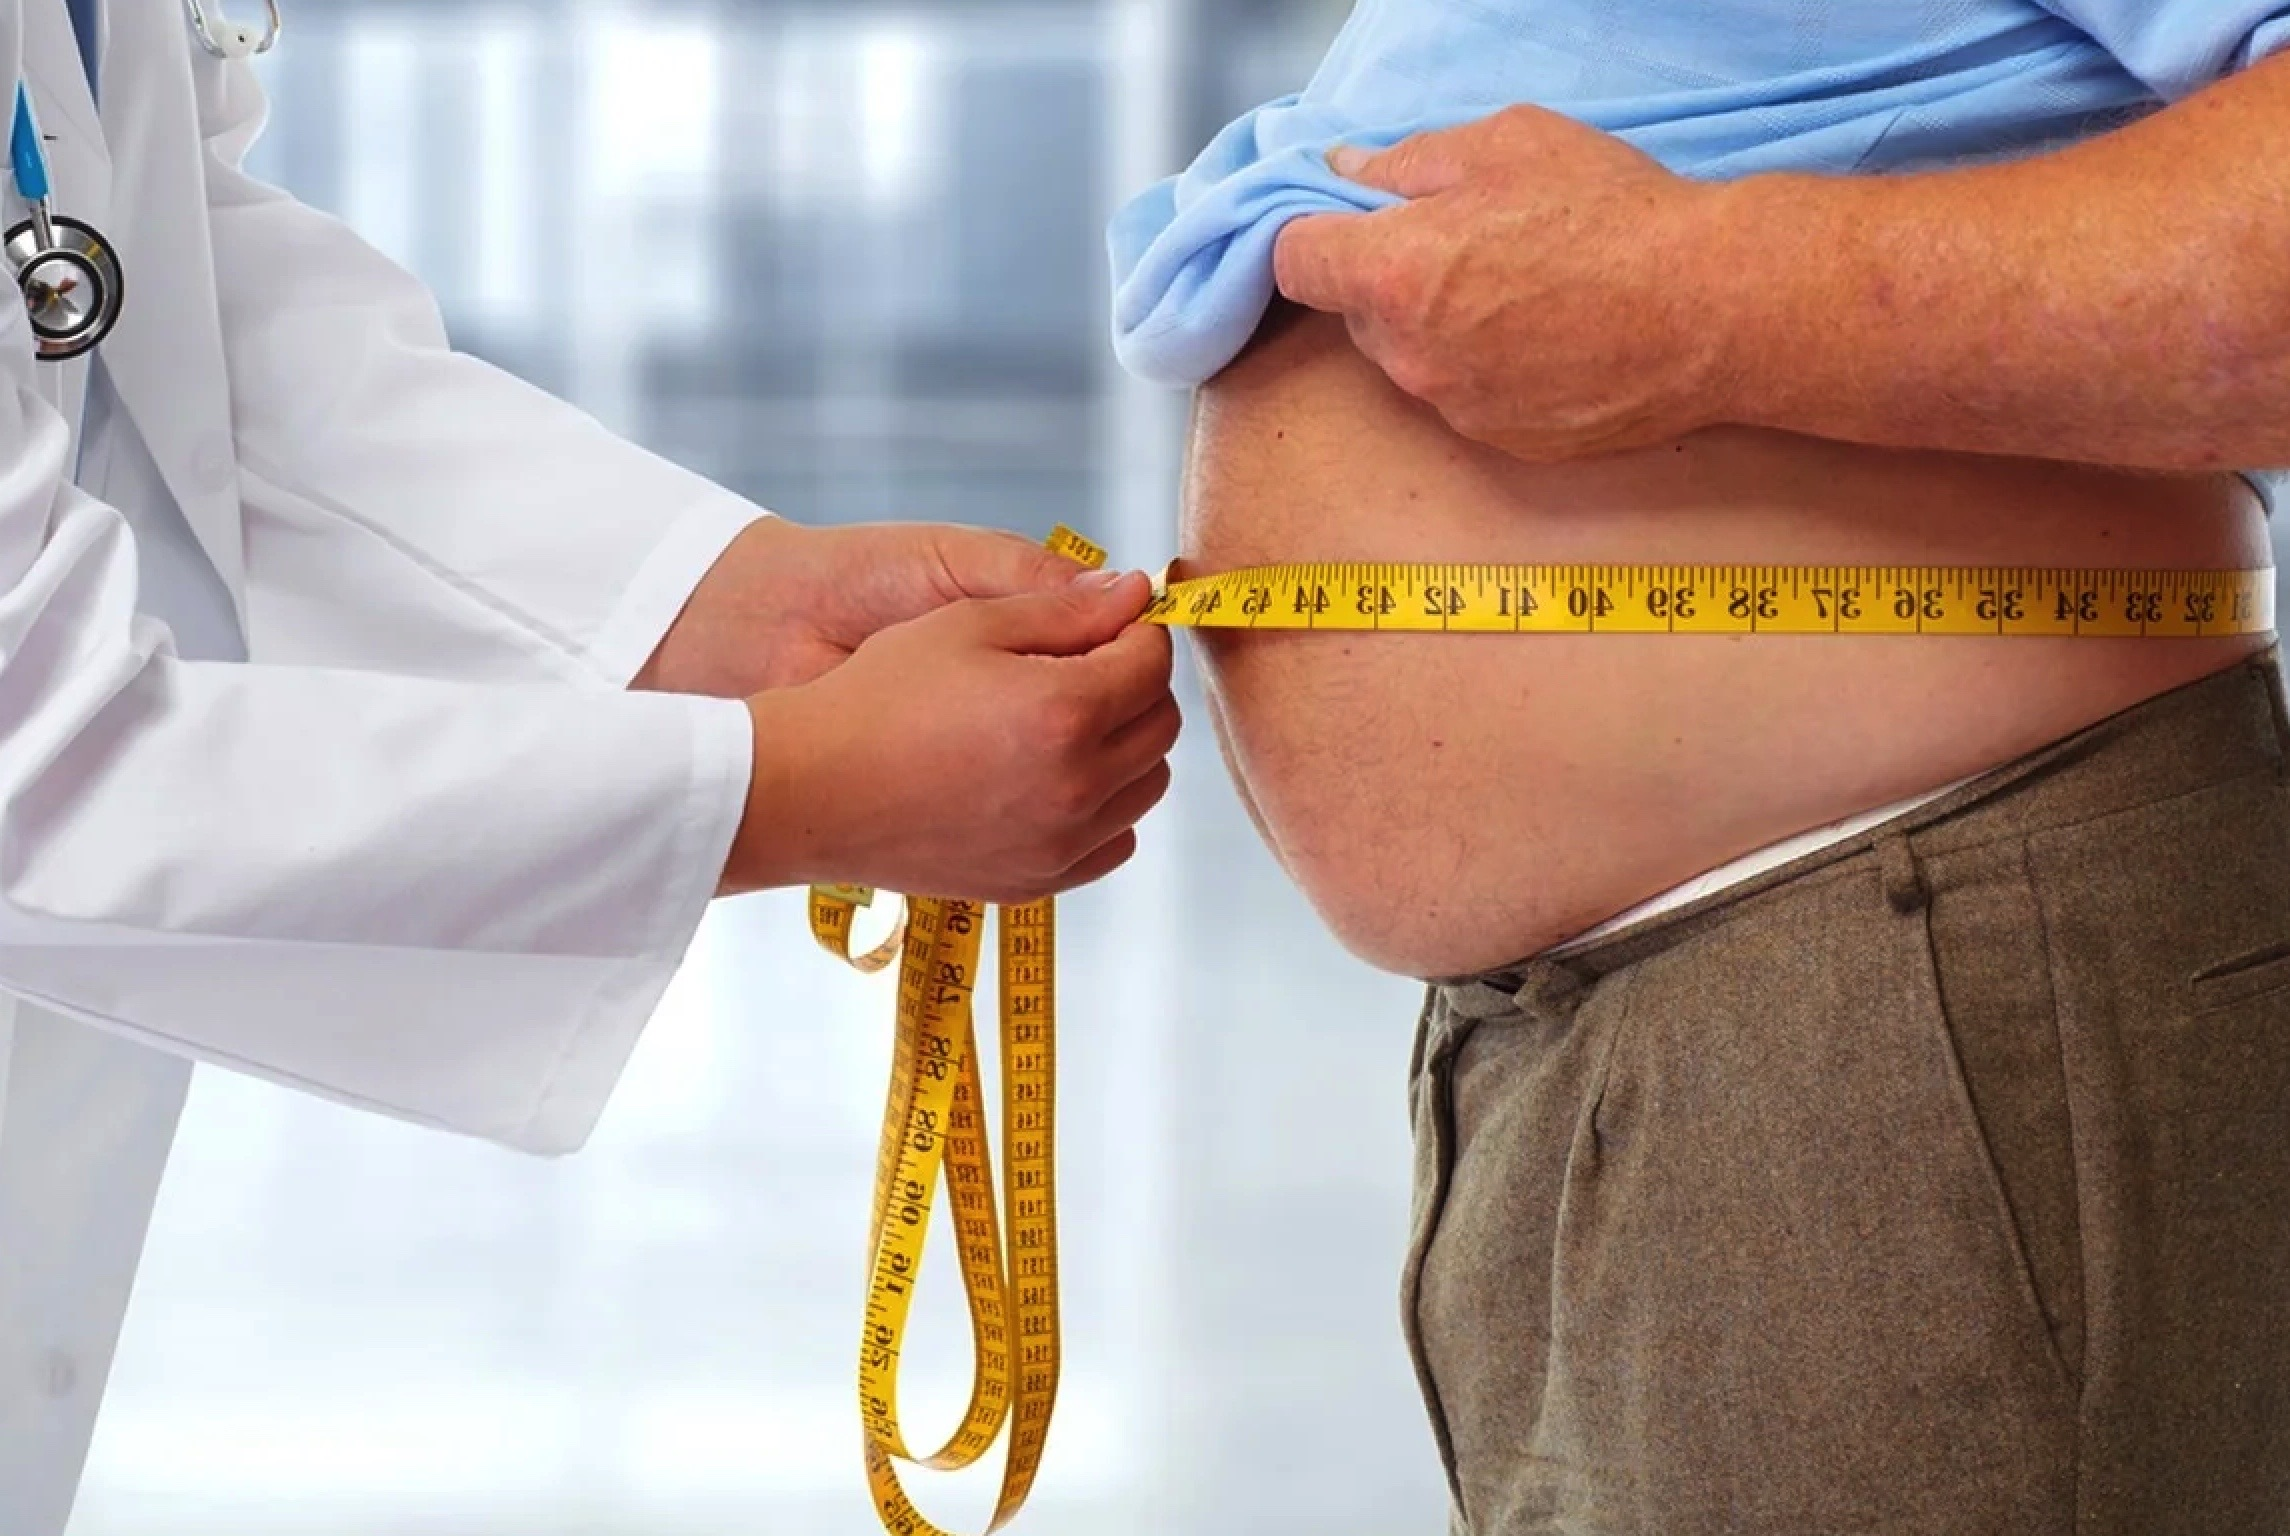 Obesity represents a catastrophic failure of government policy, public health, and medicine